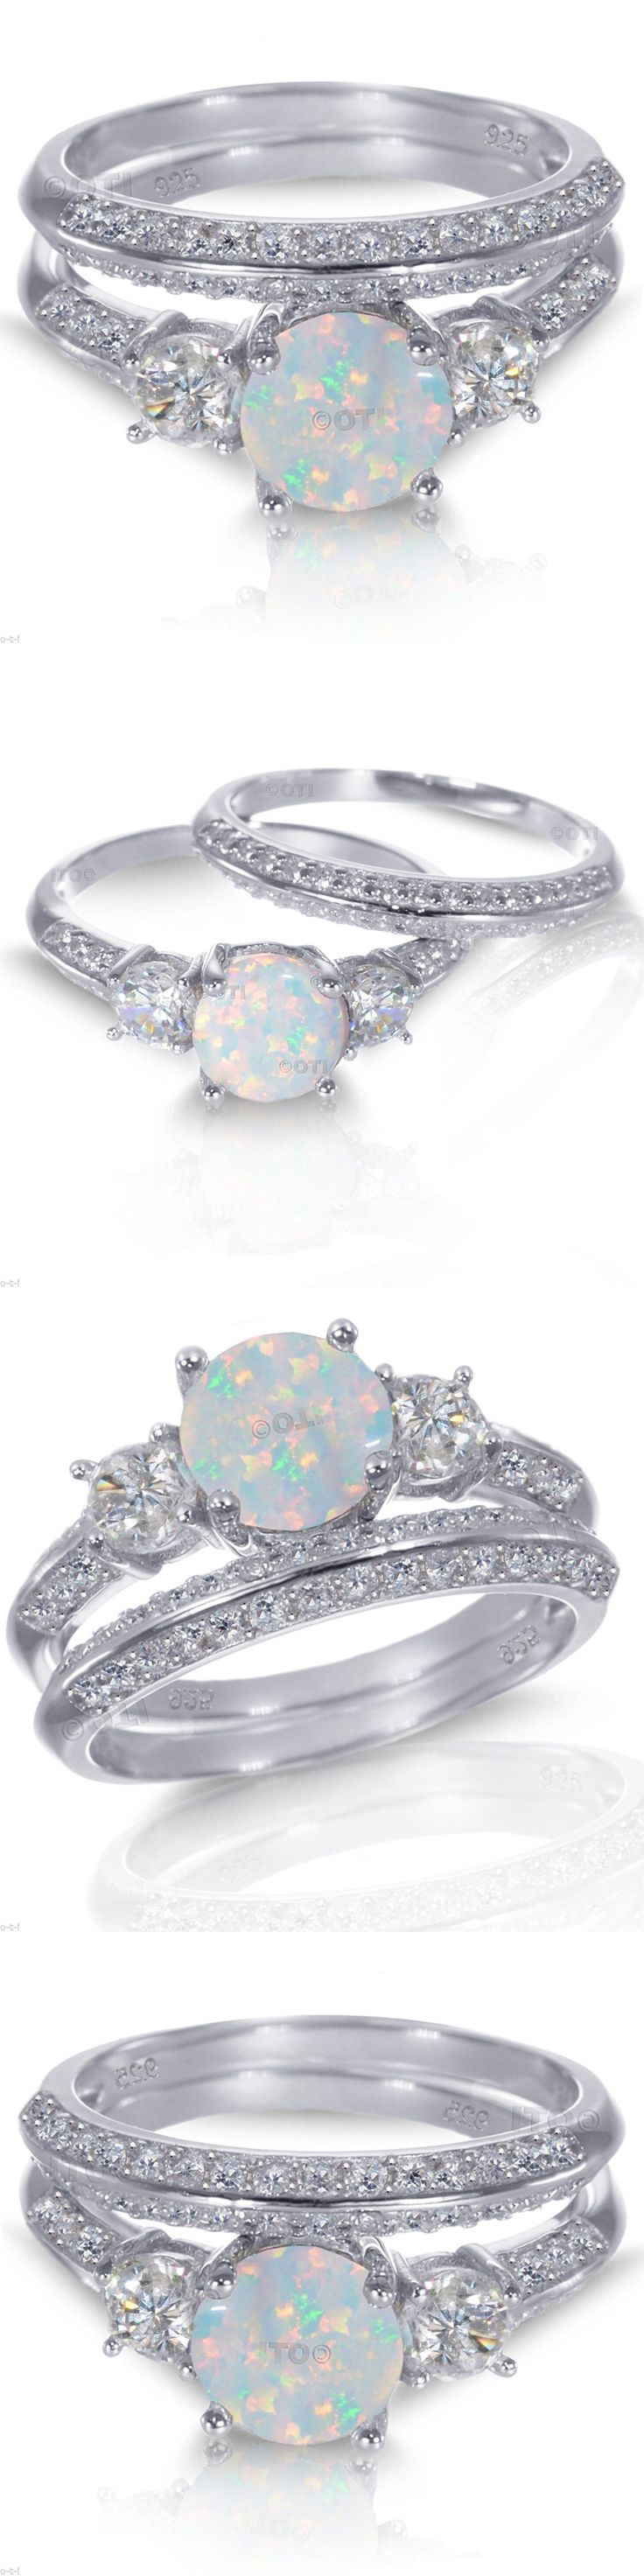 opal engagement rings opal wedding ring sets Rings White Gold Sterling Silver Round Cut White Fire Opal Wedding Engagement Ring Set